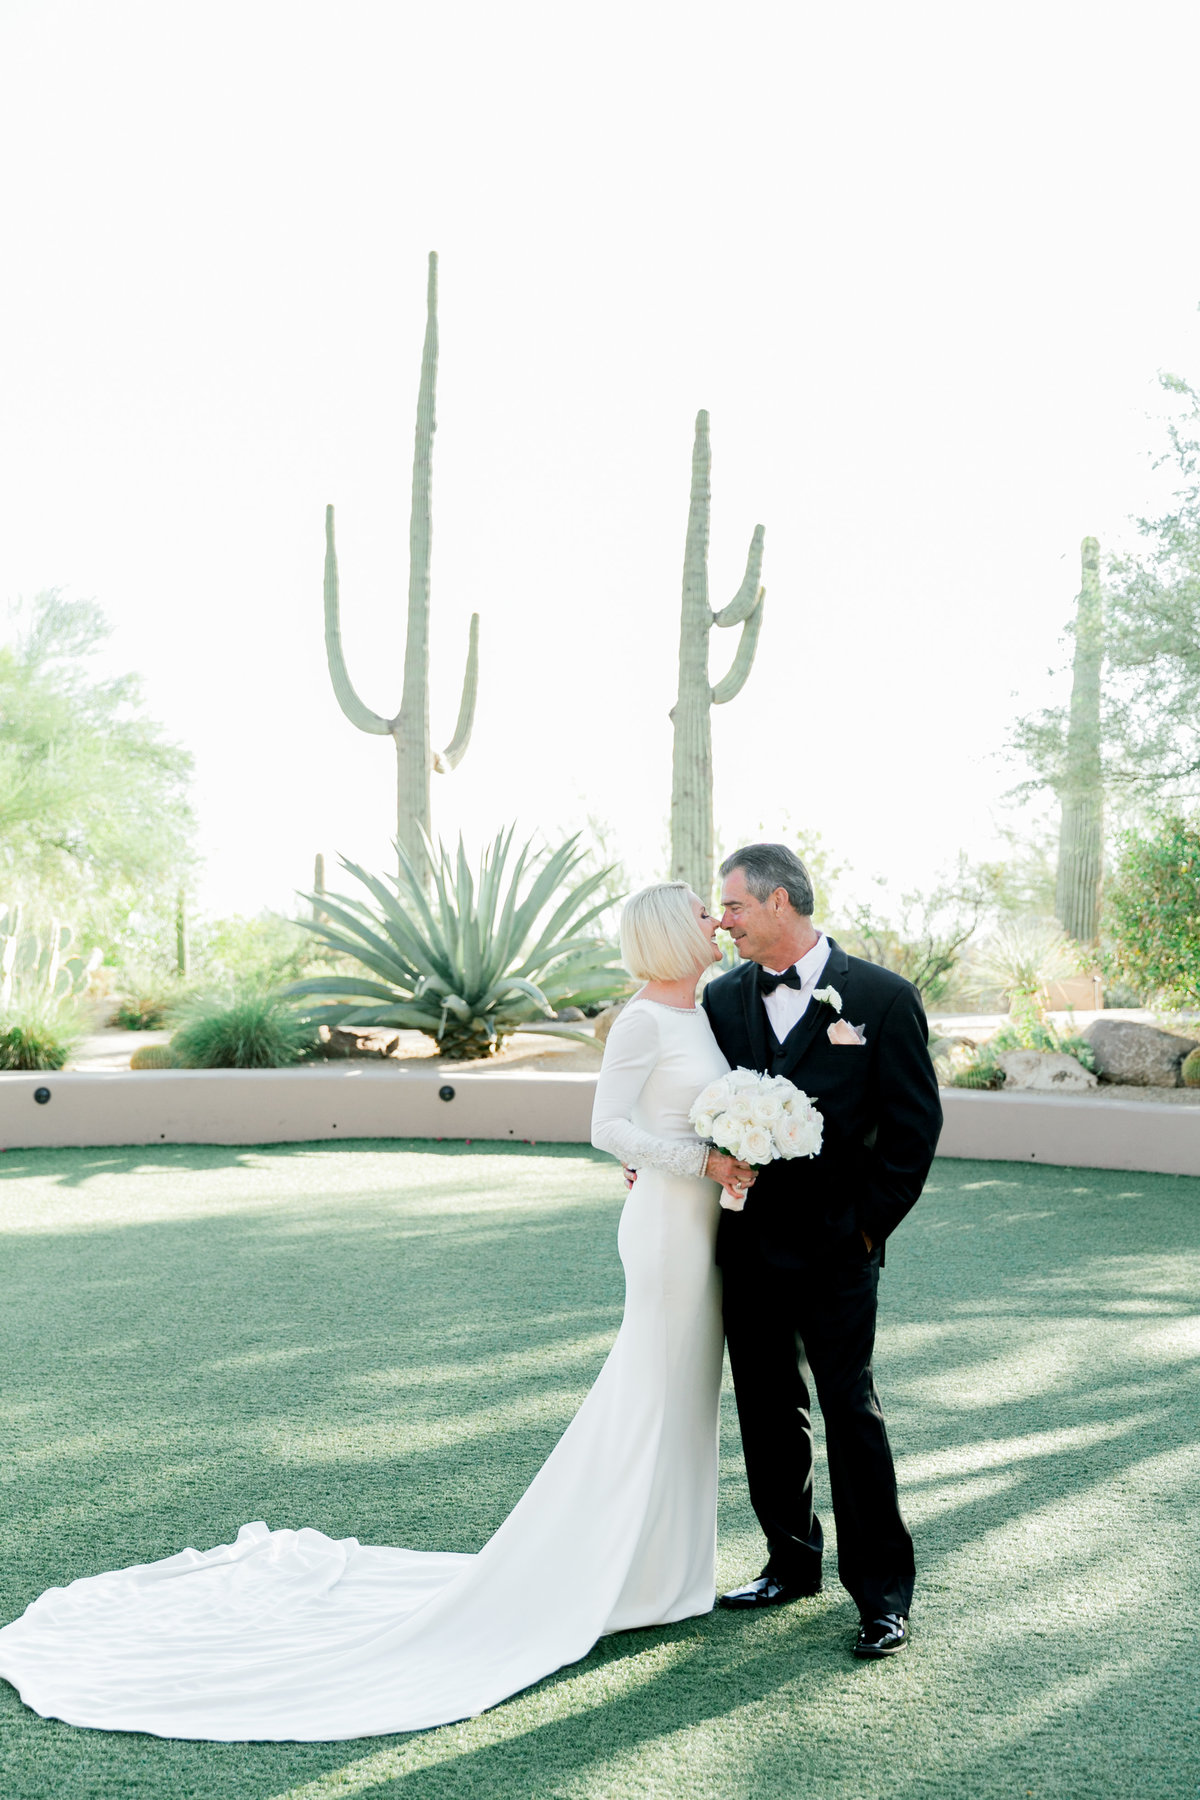 Karlie Colleen Photography - Four Seasons Scottsdale Arizona Wedding - Camille & Jim -191